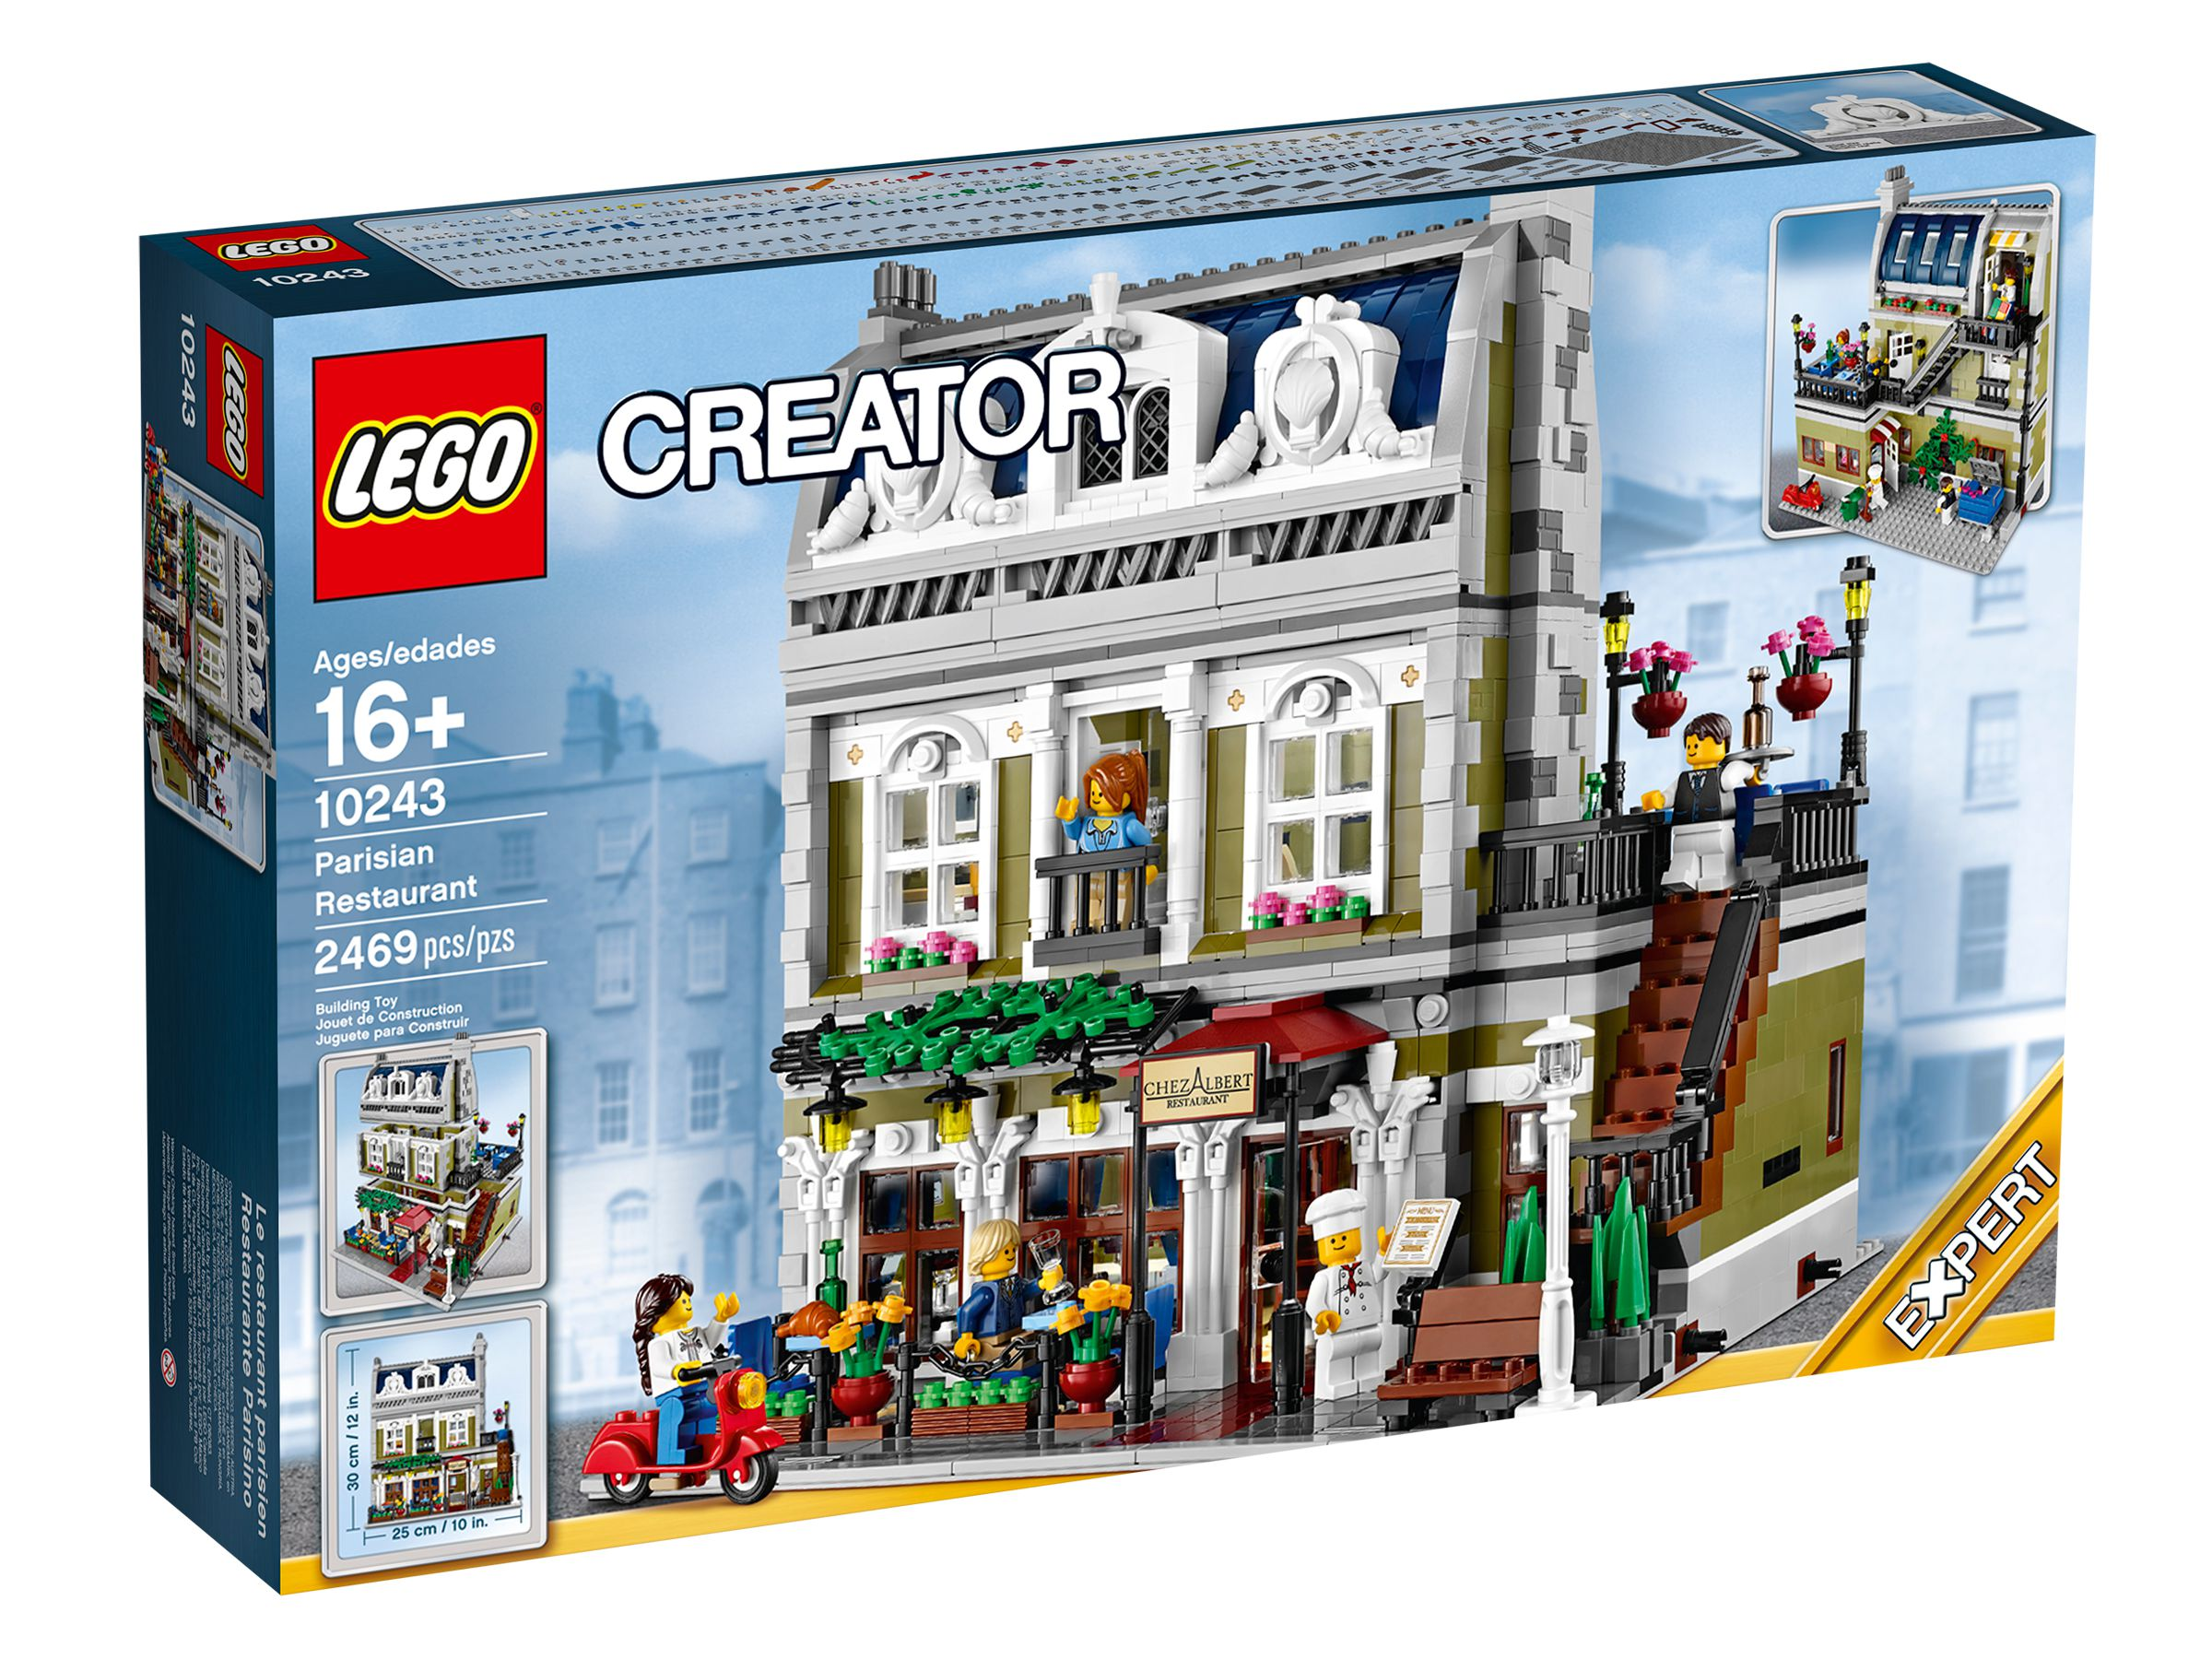 LEGO Advanced Models 10243 Pariser Restaurant LEGO_10243_alt1.jpg